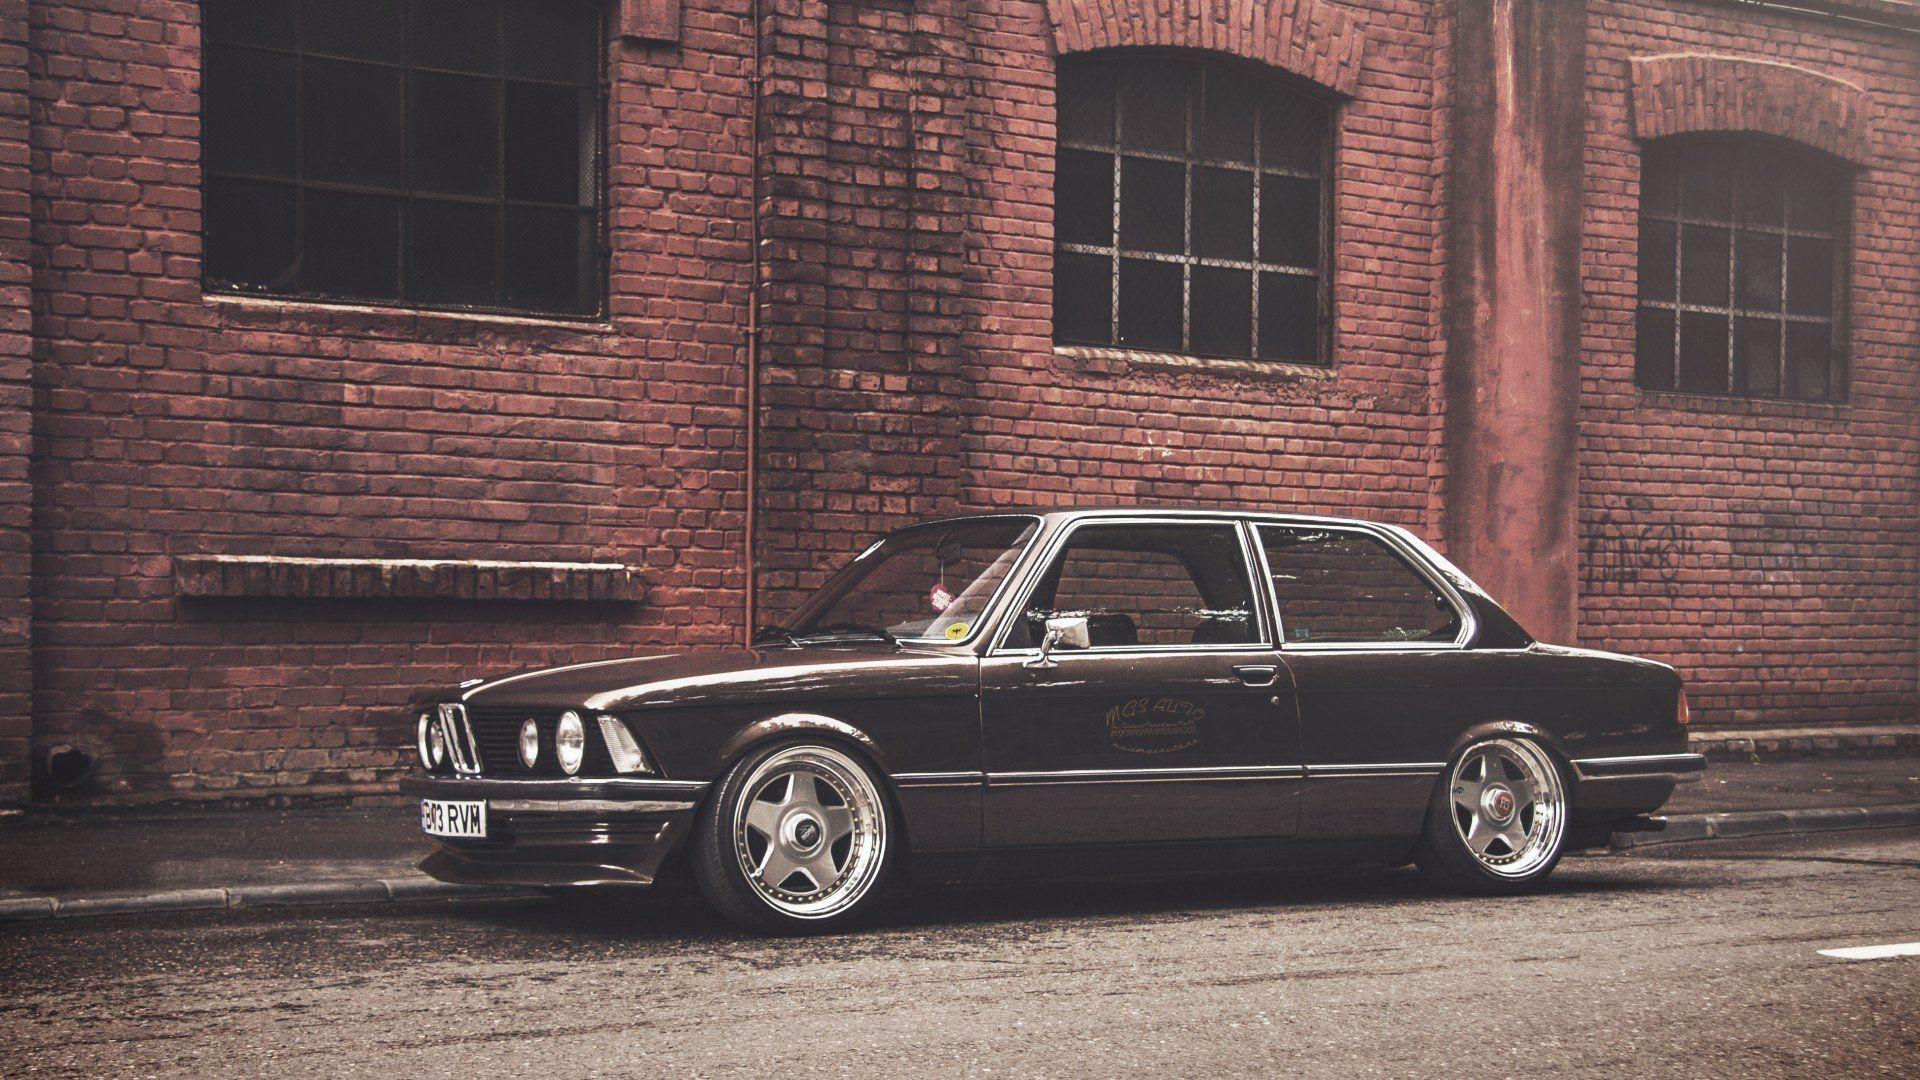 hight resolution of bmw e21 walldevil